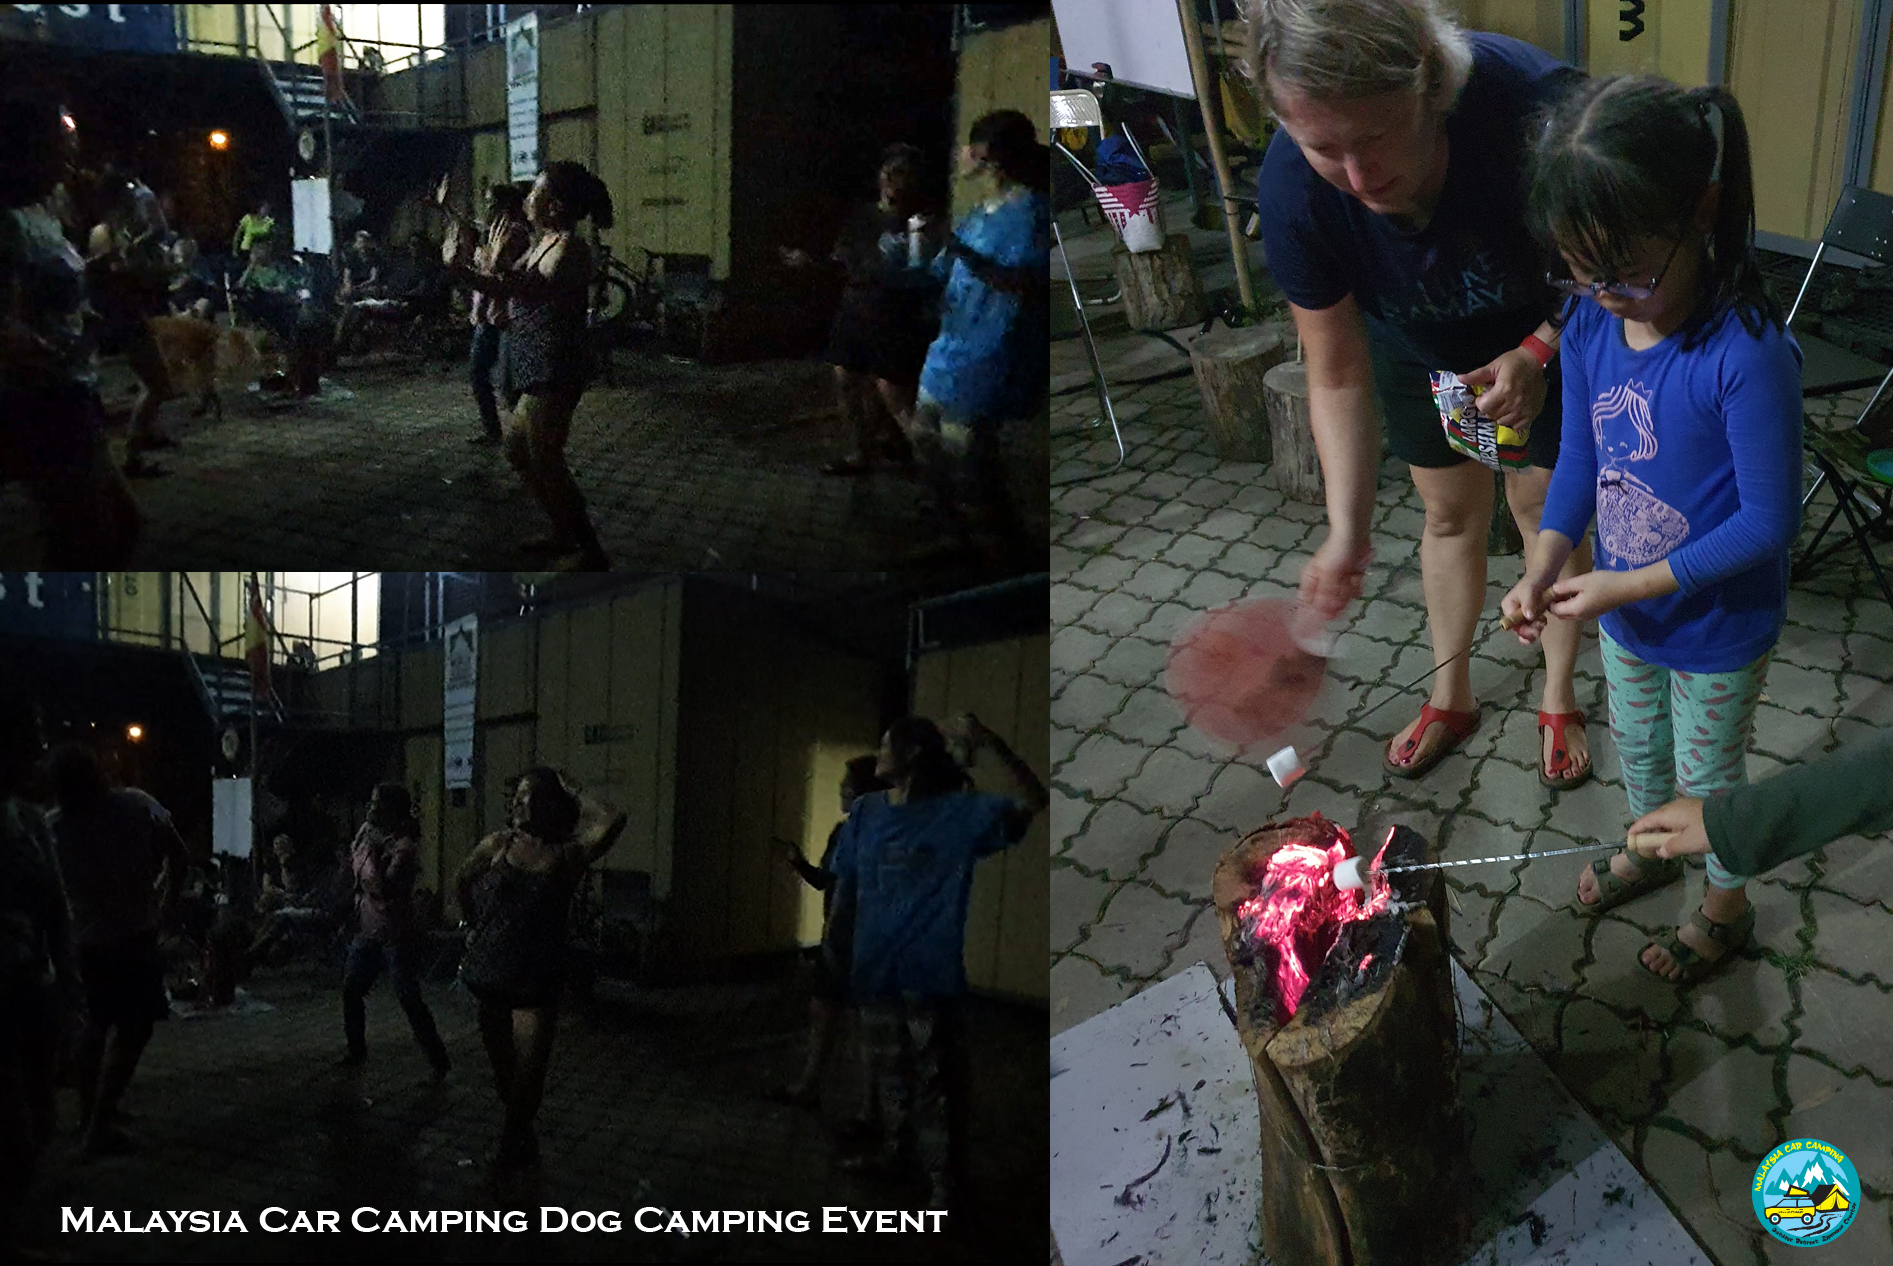 dog_camping_event_selangor_camping_site_malaysia_car_camping_private_event_organizer-10